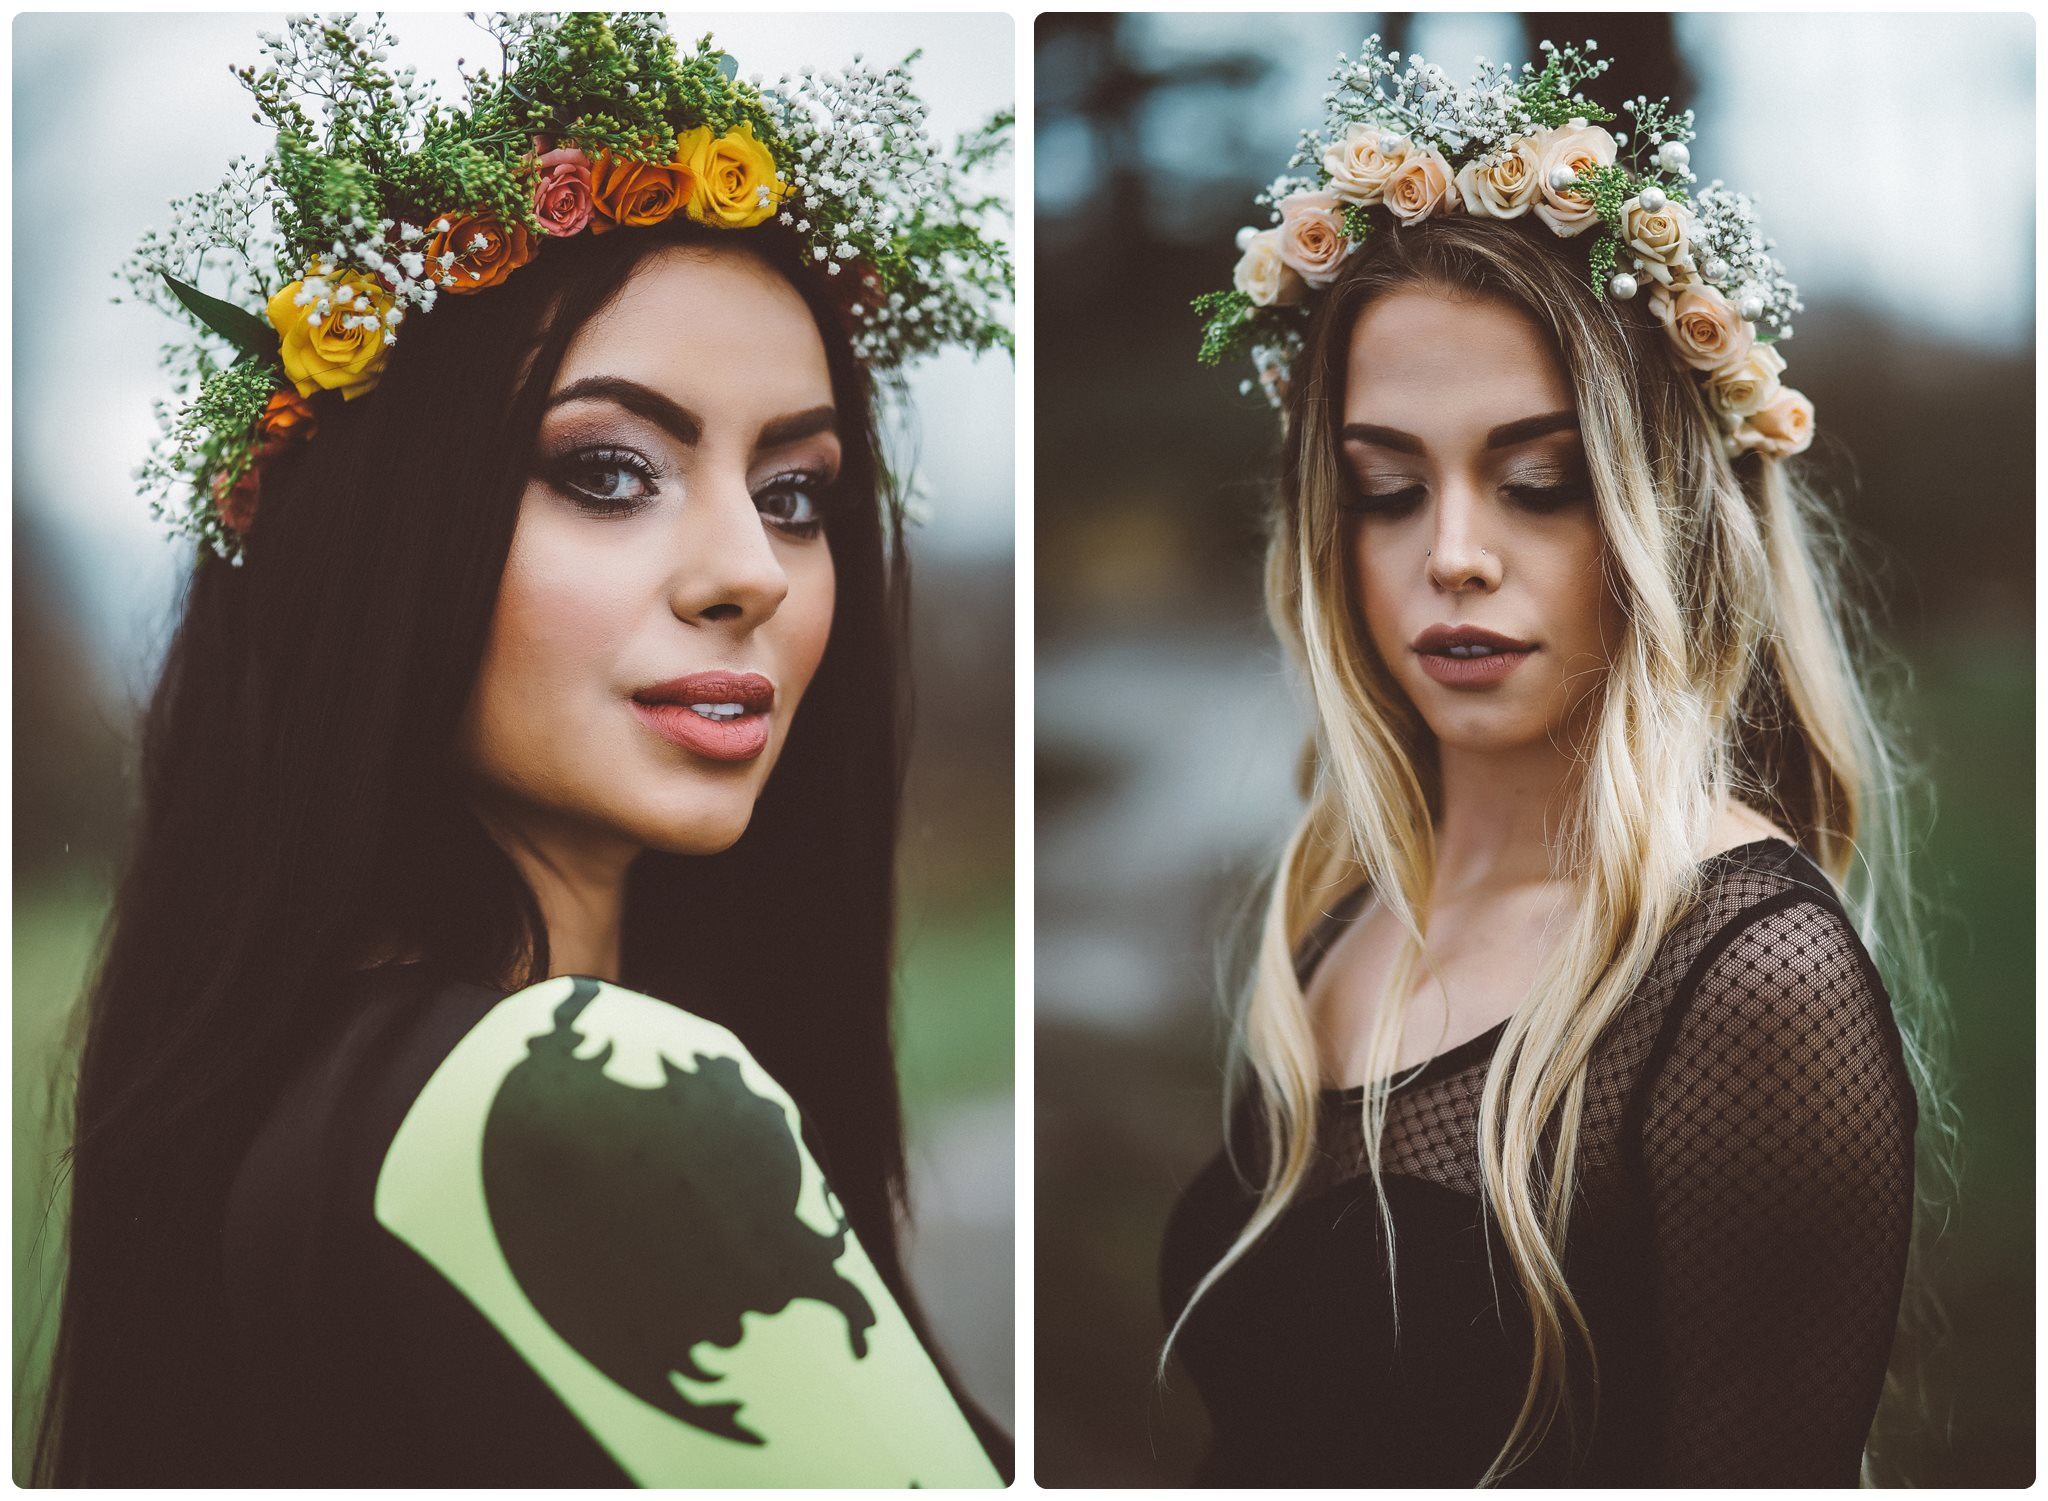 Shiverz Fresh Floral crowns